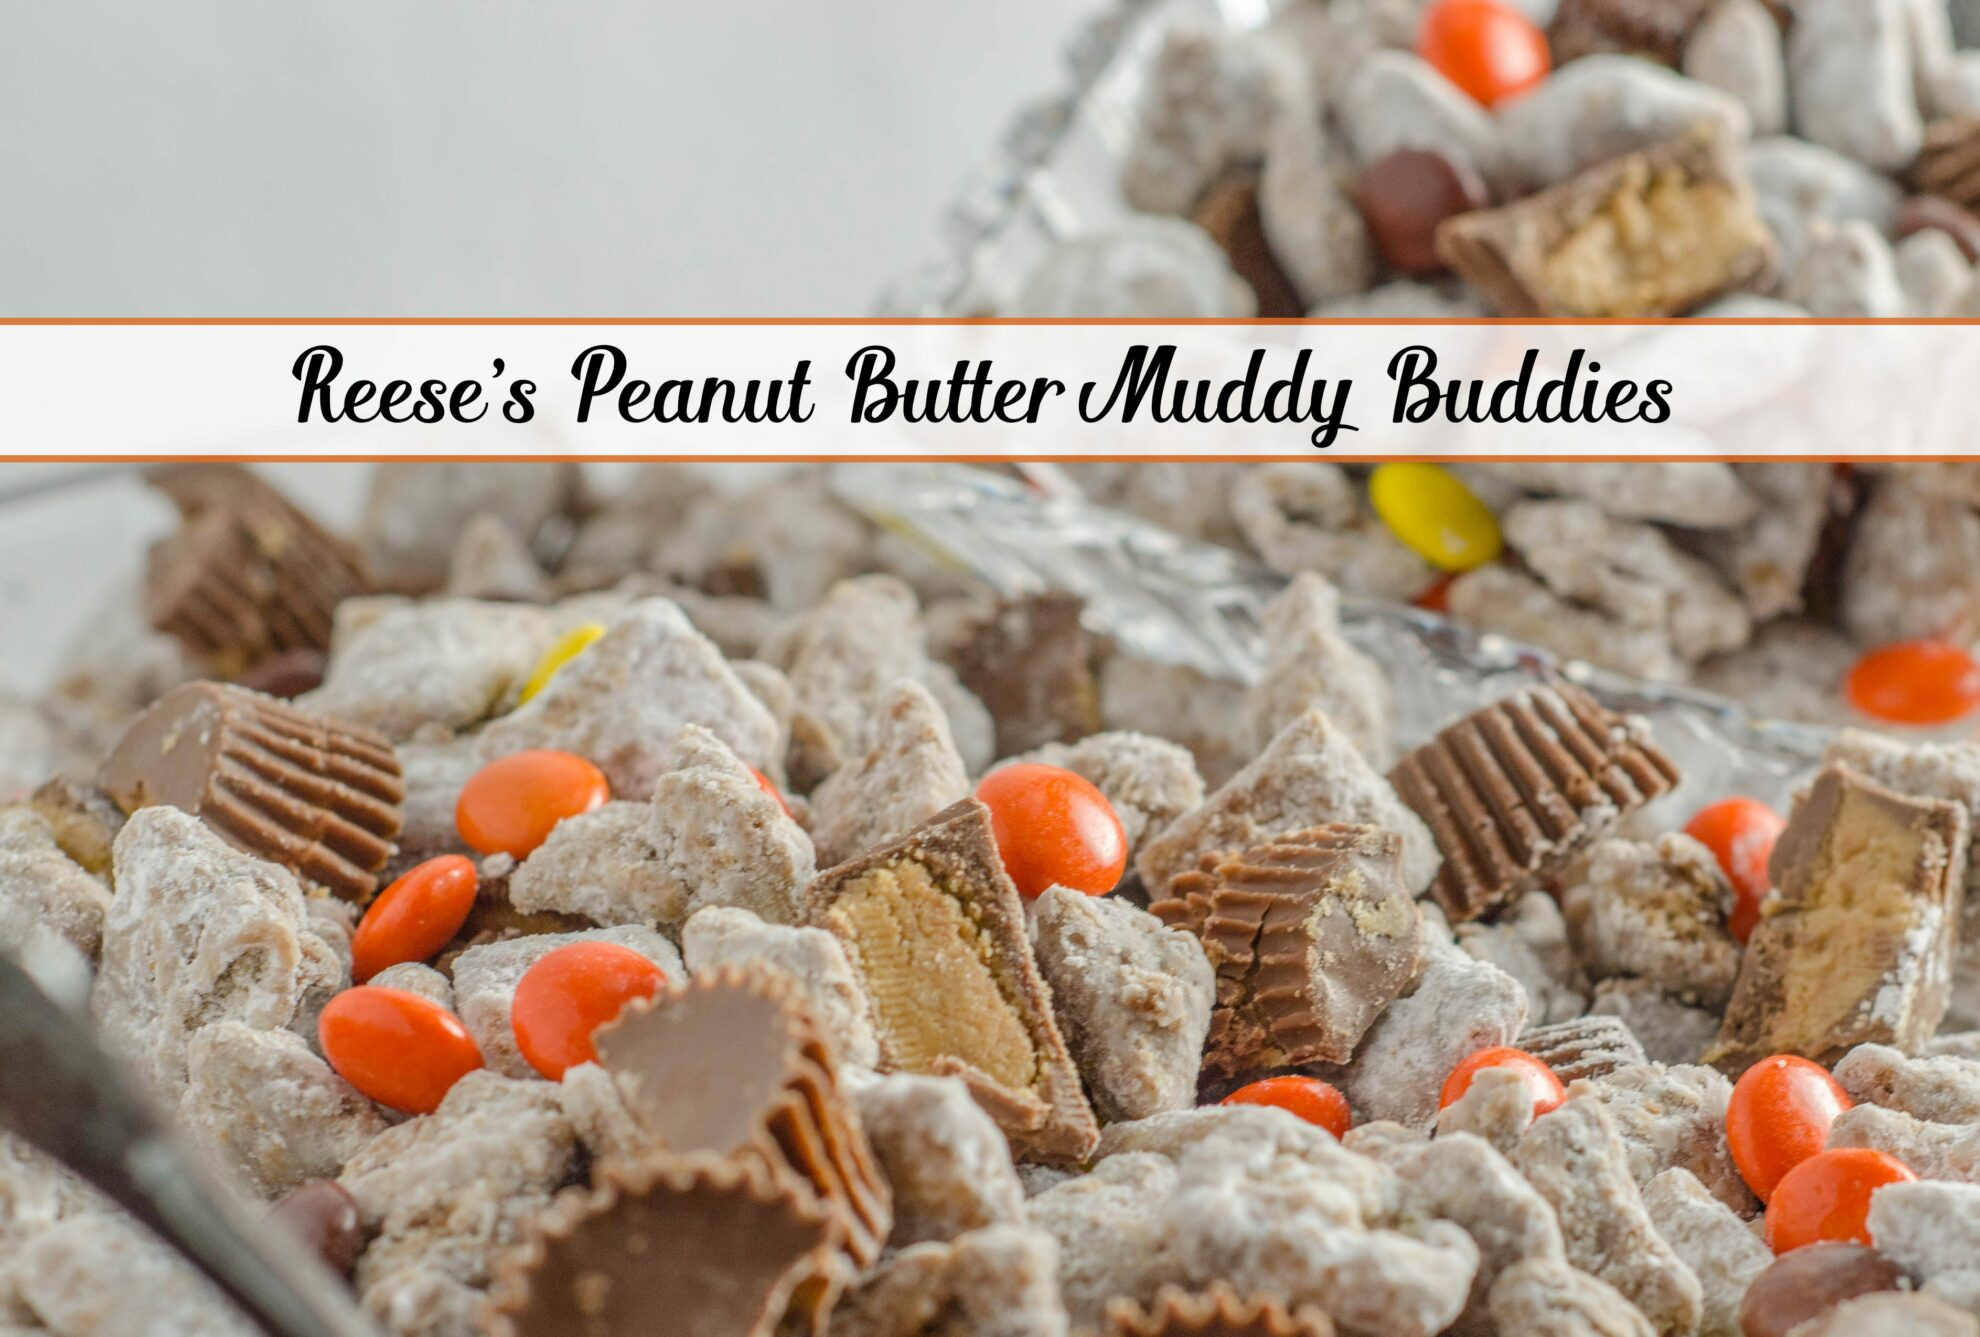 Reese's peanut butter cups. A dash of Reese's pieces. Muddy buddies made with peanut butter, milk chocolate, and peanut butter chips. Heaven.